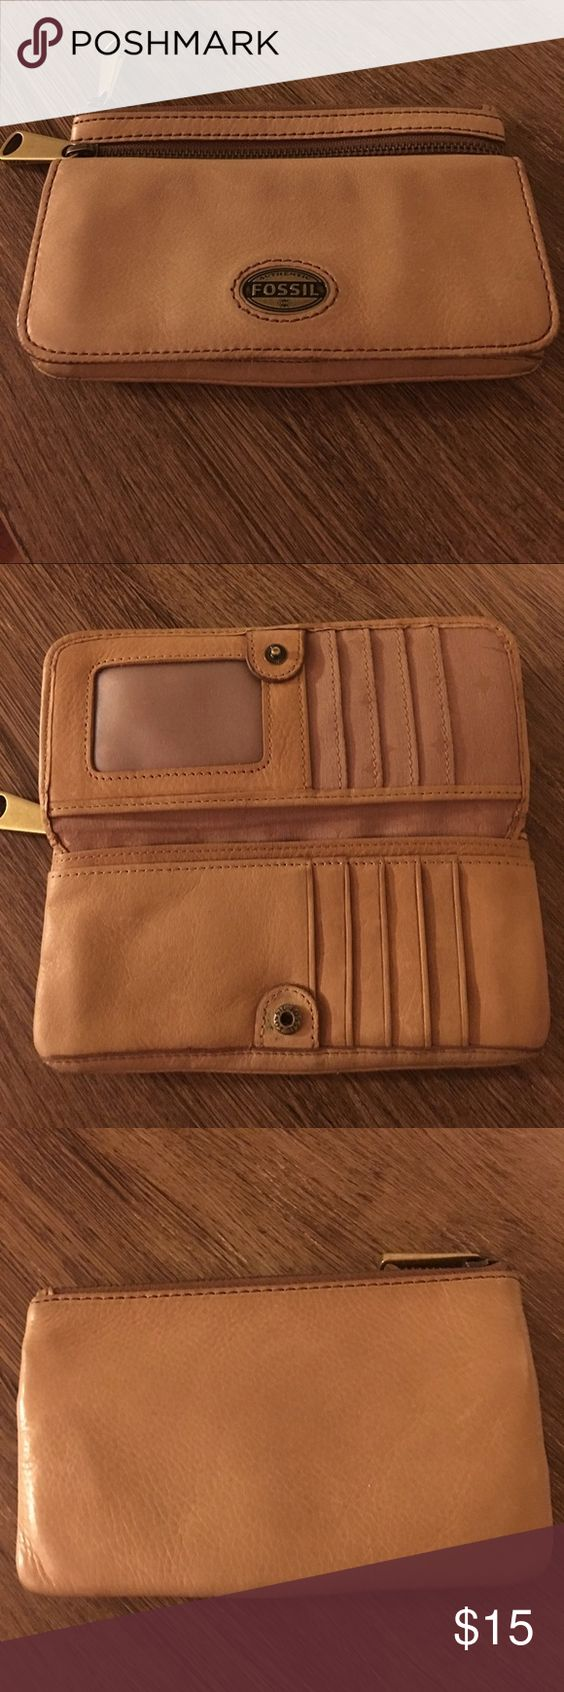 Beautiful tan fossil wallet! This wallet is awesome! In fantastic condition. I would love to keep it but I just need something bigger! ❤️ Fossil Bags Wallets